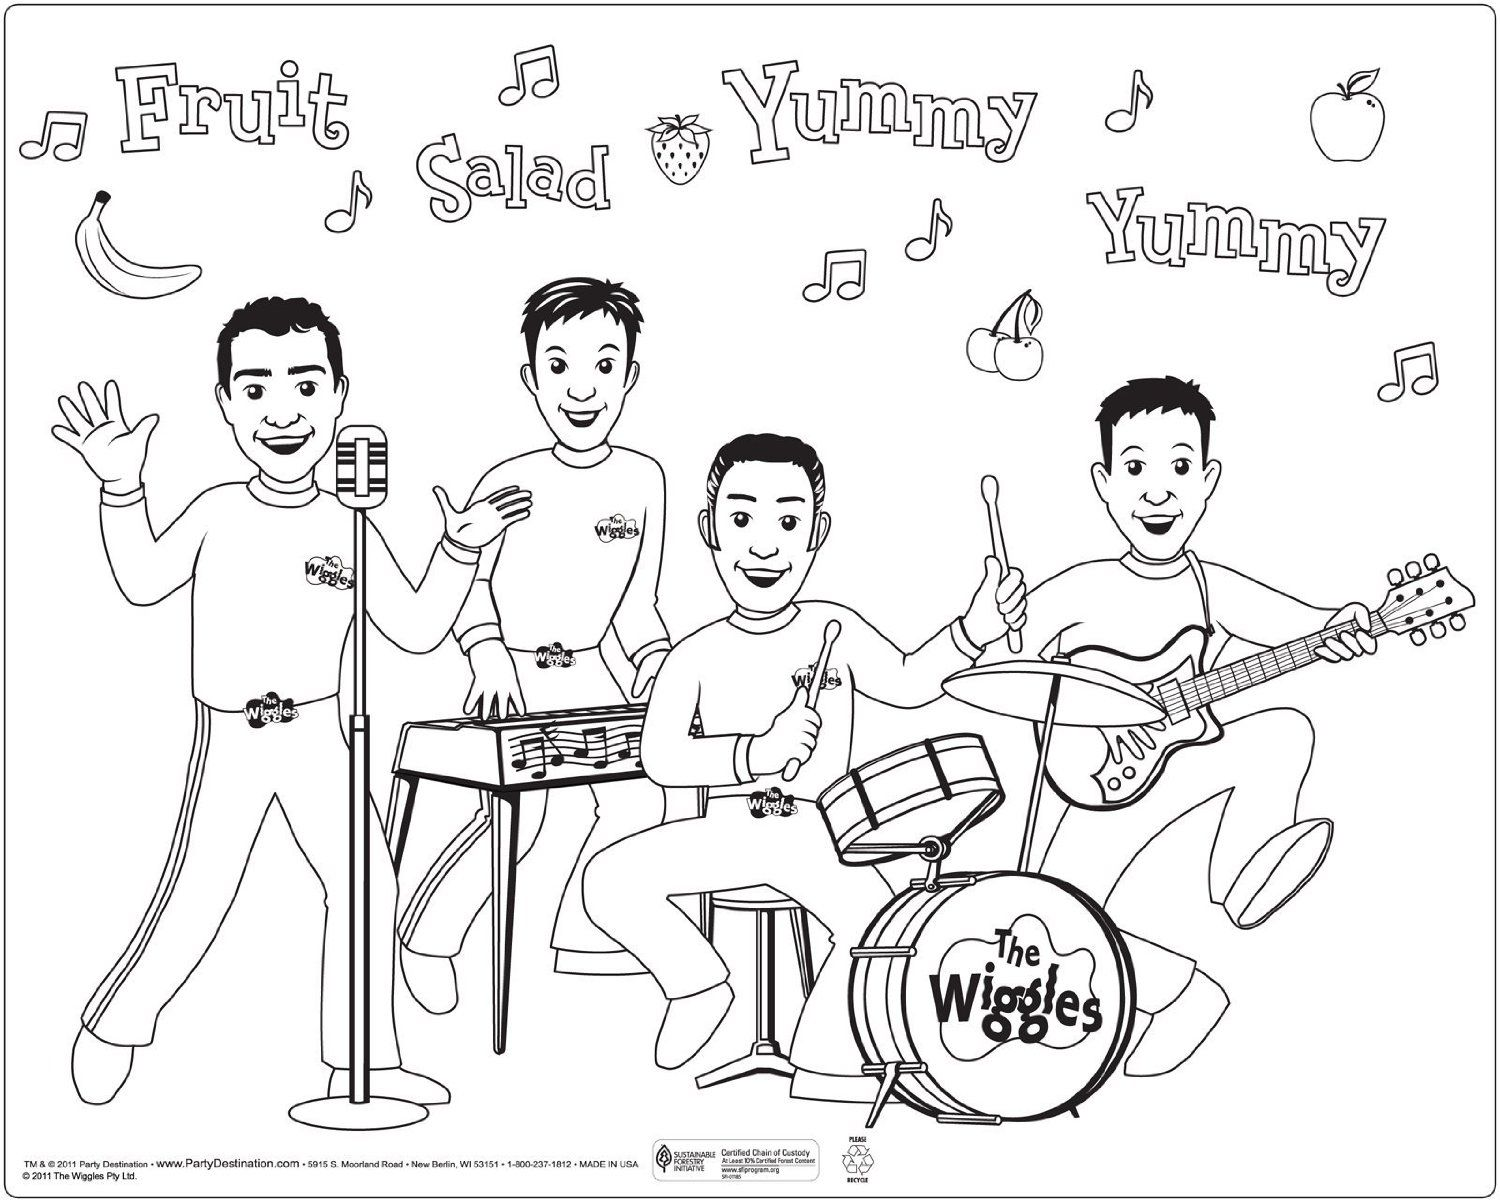 The Wiggles Coloring Pages Coloring Pages Pictures Imagixs